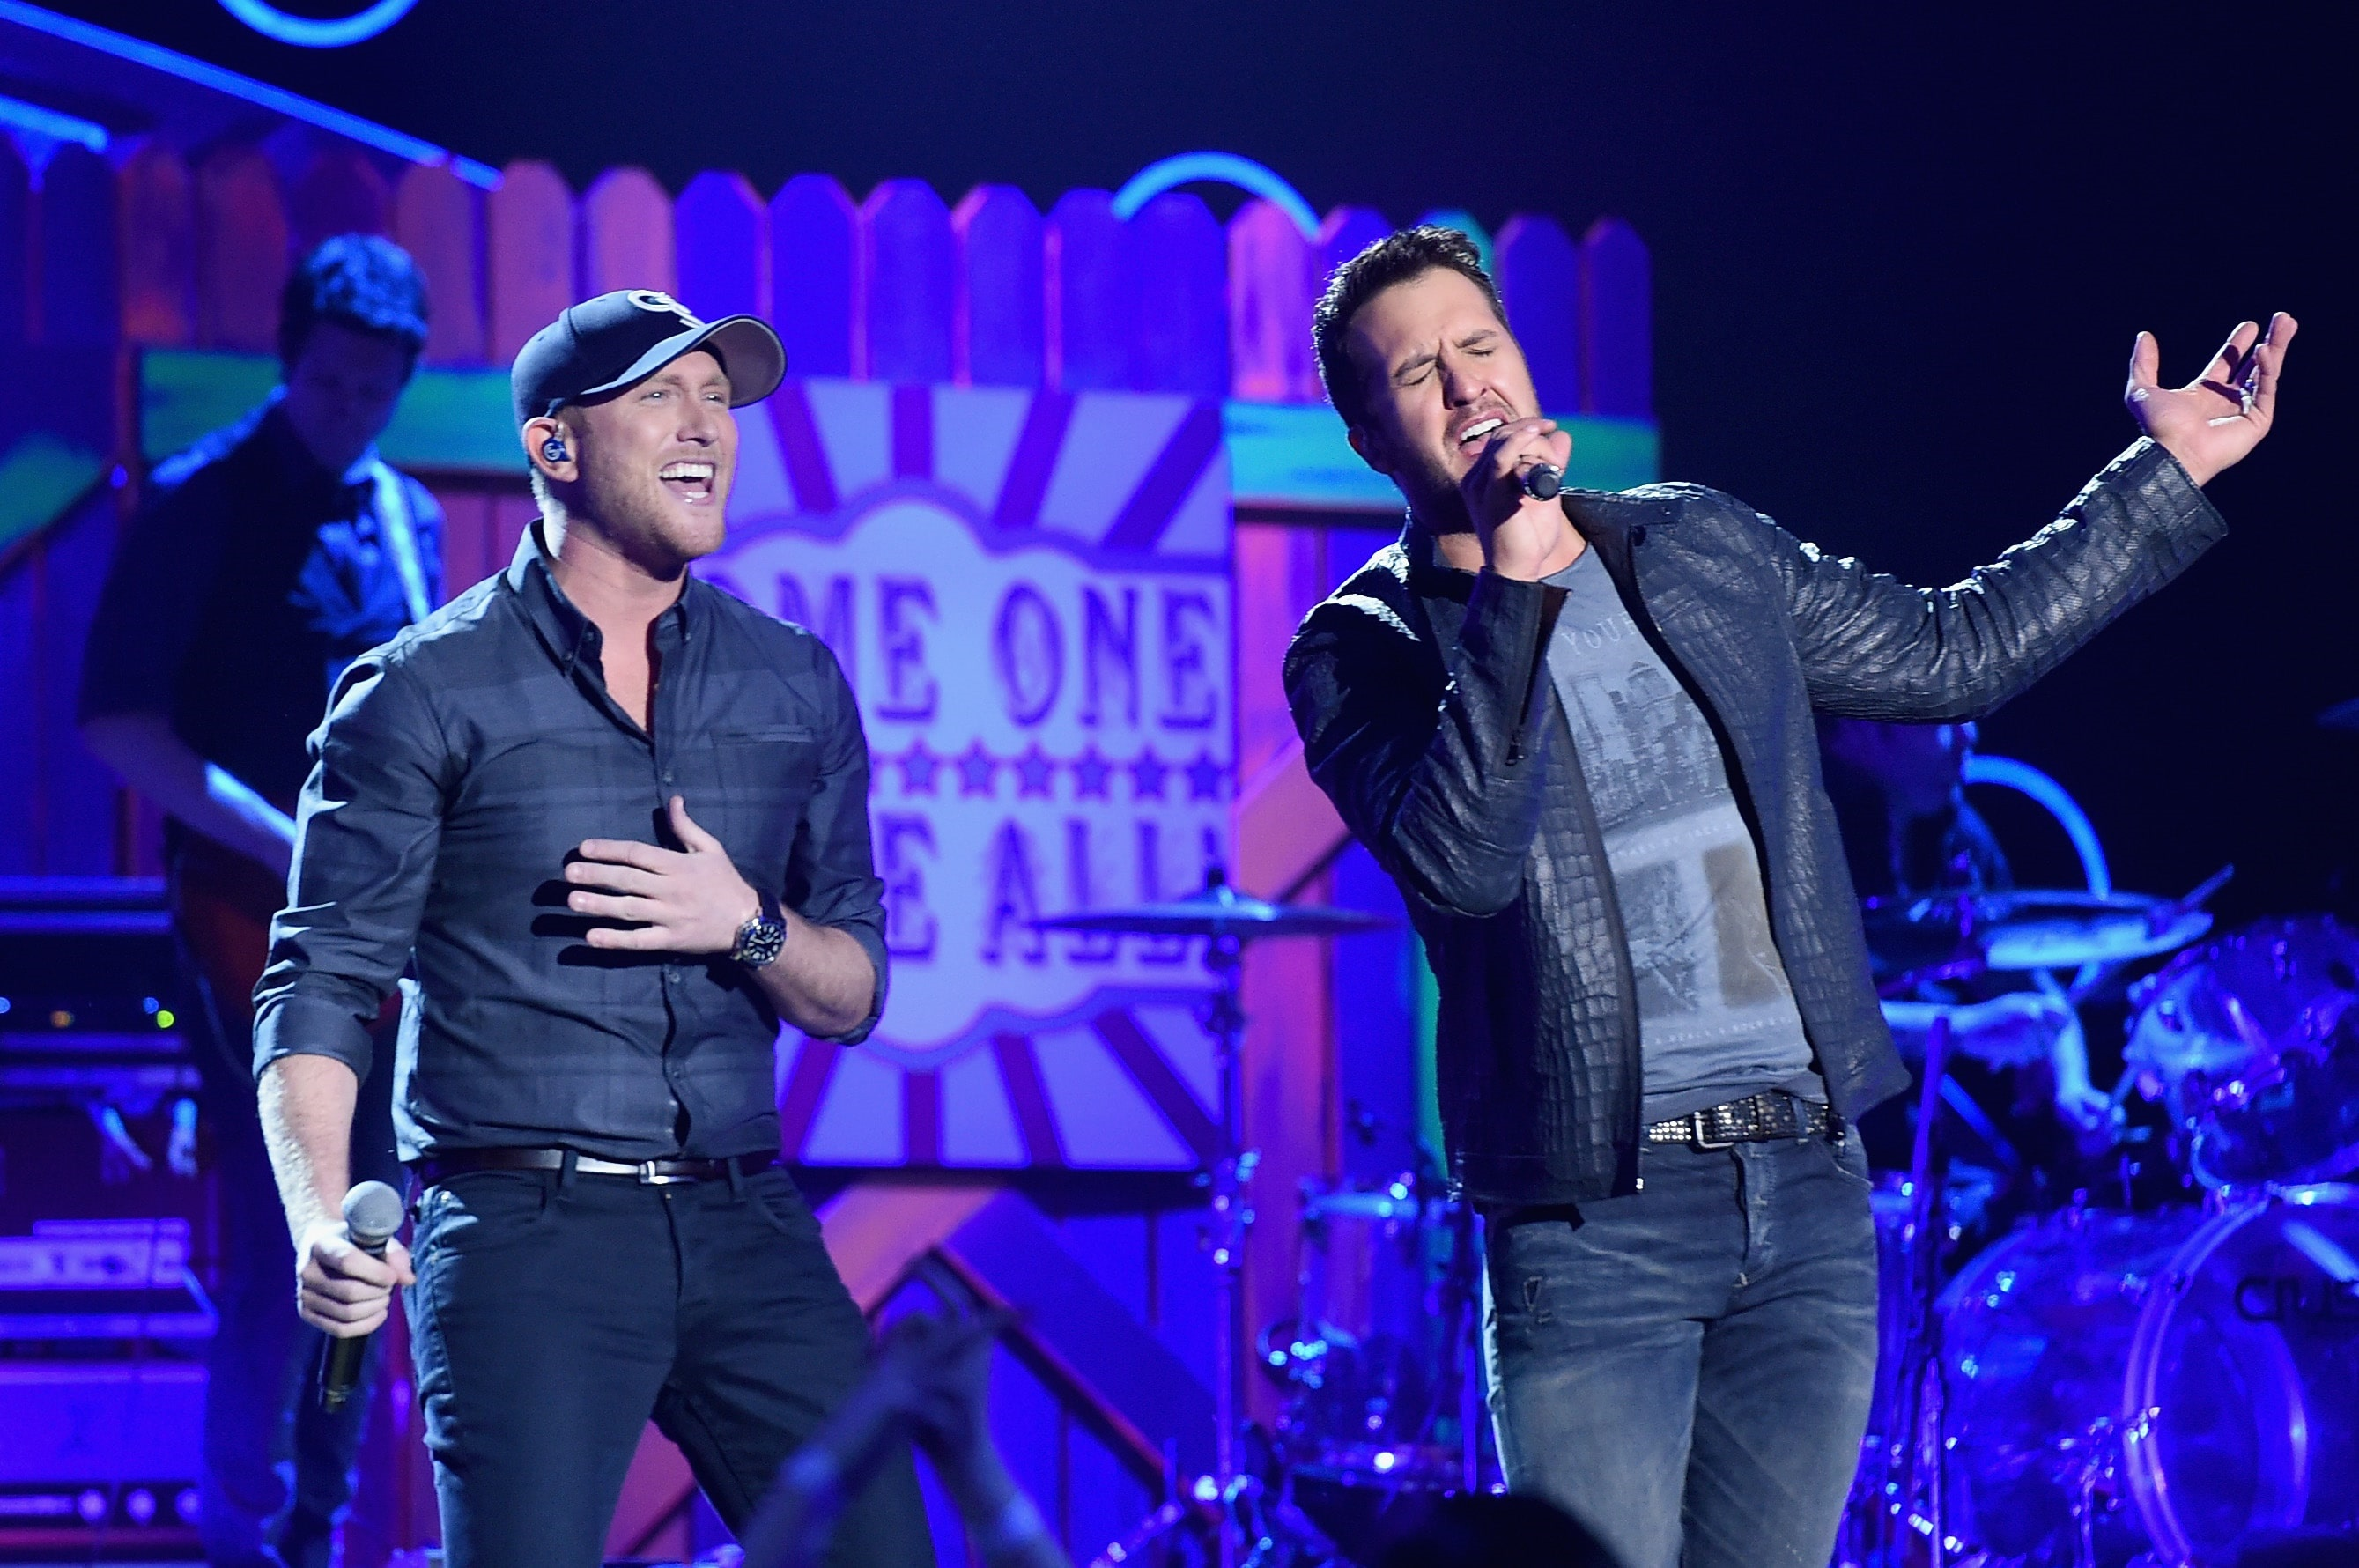 NASHVILLE, TN - DECEMBER 15: Recording artists Cole Swindell (L) and Luke Bryan perform onstage during 2014 American Country Countdown Awards at Music City Center on December 15, 2014 in Nashville, Tennessee. (Photo by Jason Merritt/Getty Images for dcp)